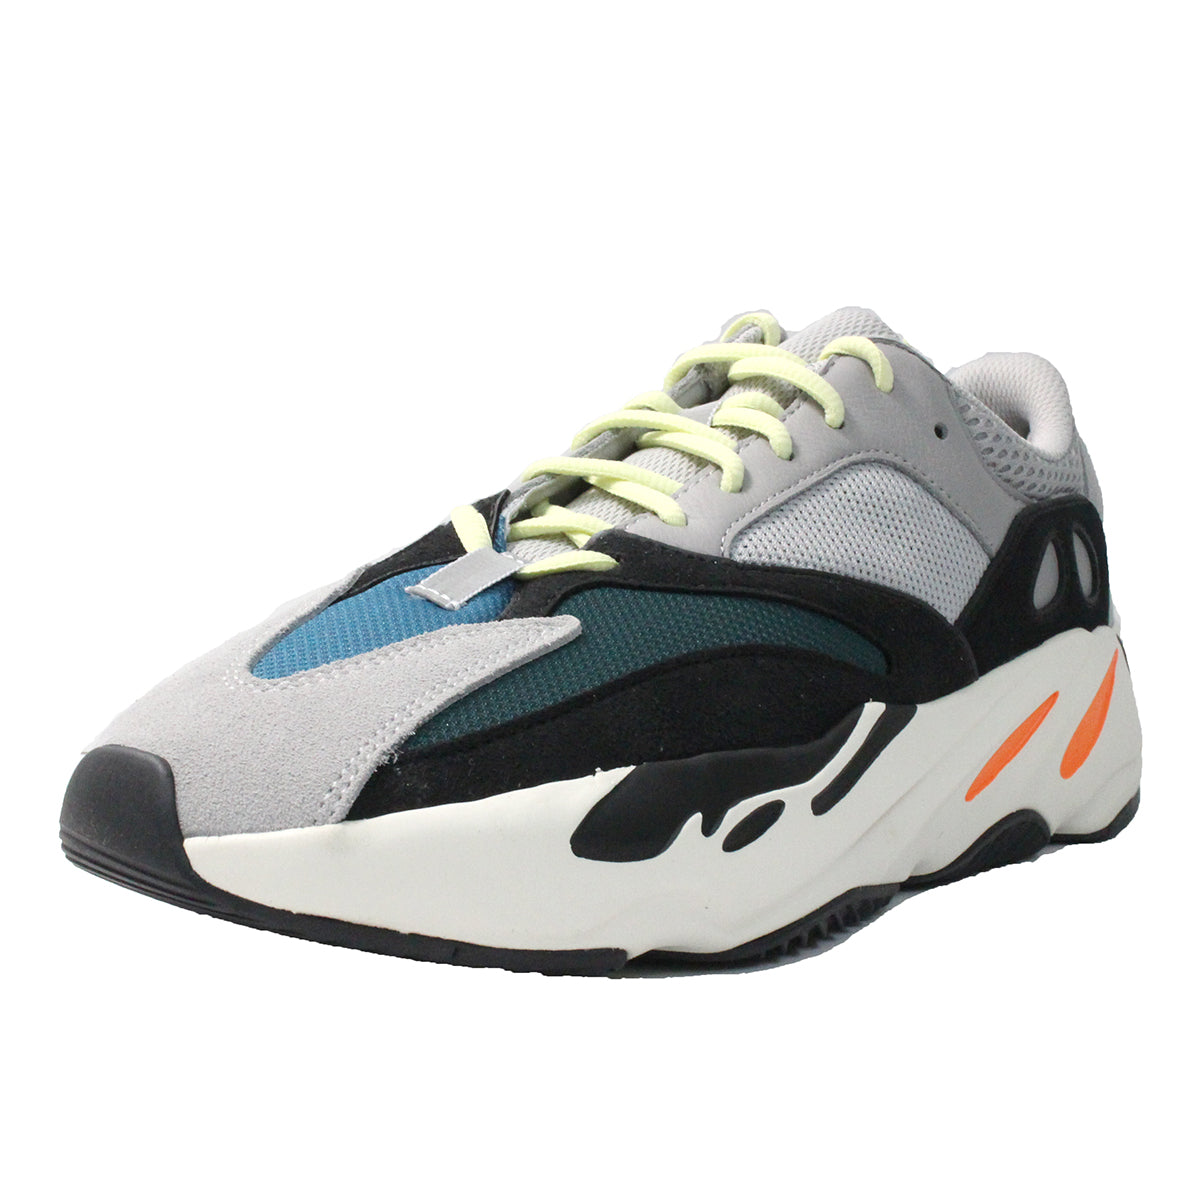 Adidas Yeezy Wave Runner 700 Solid